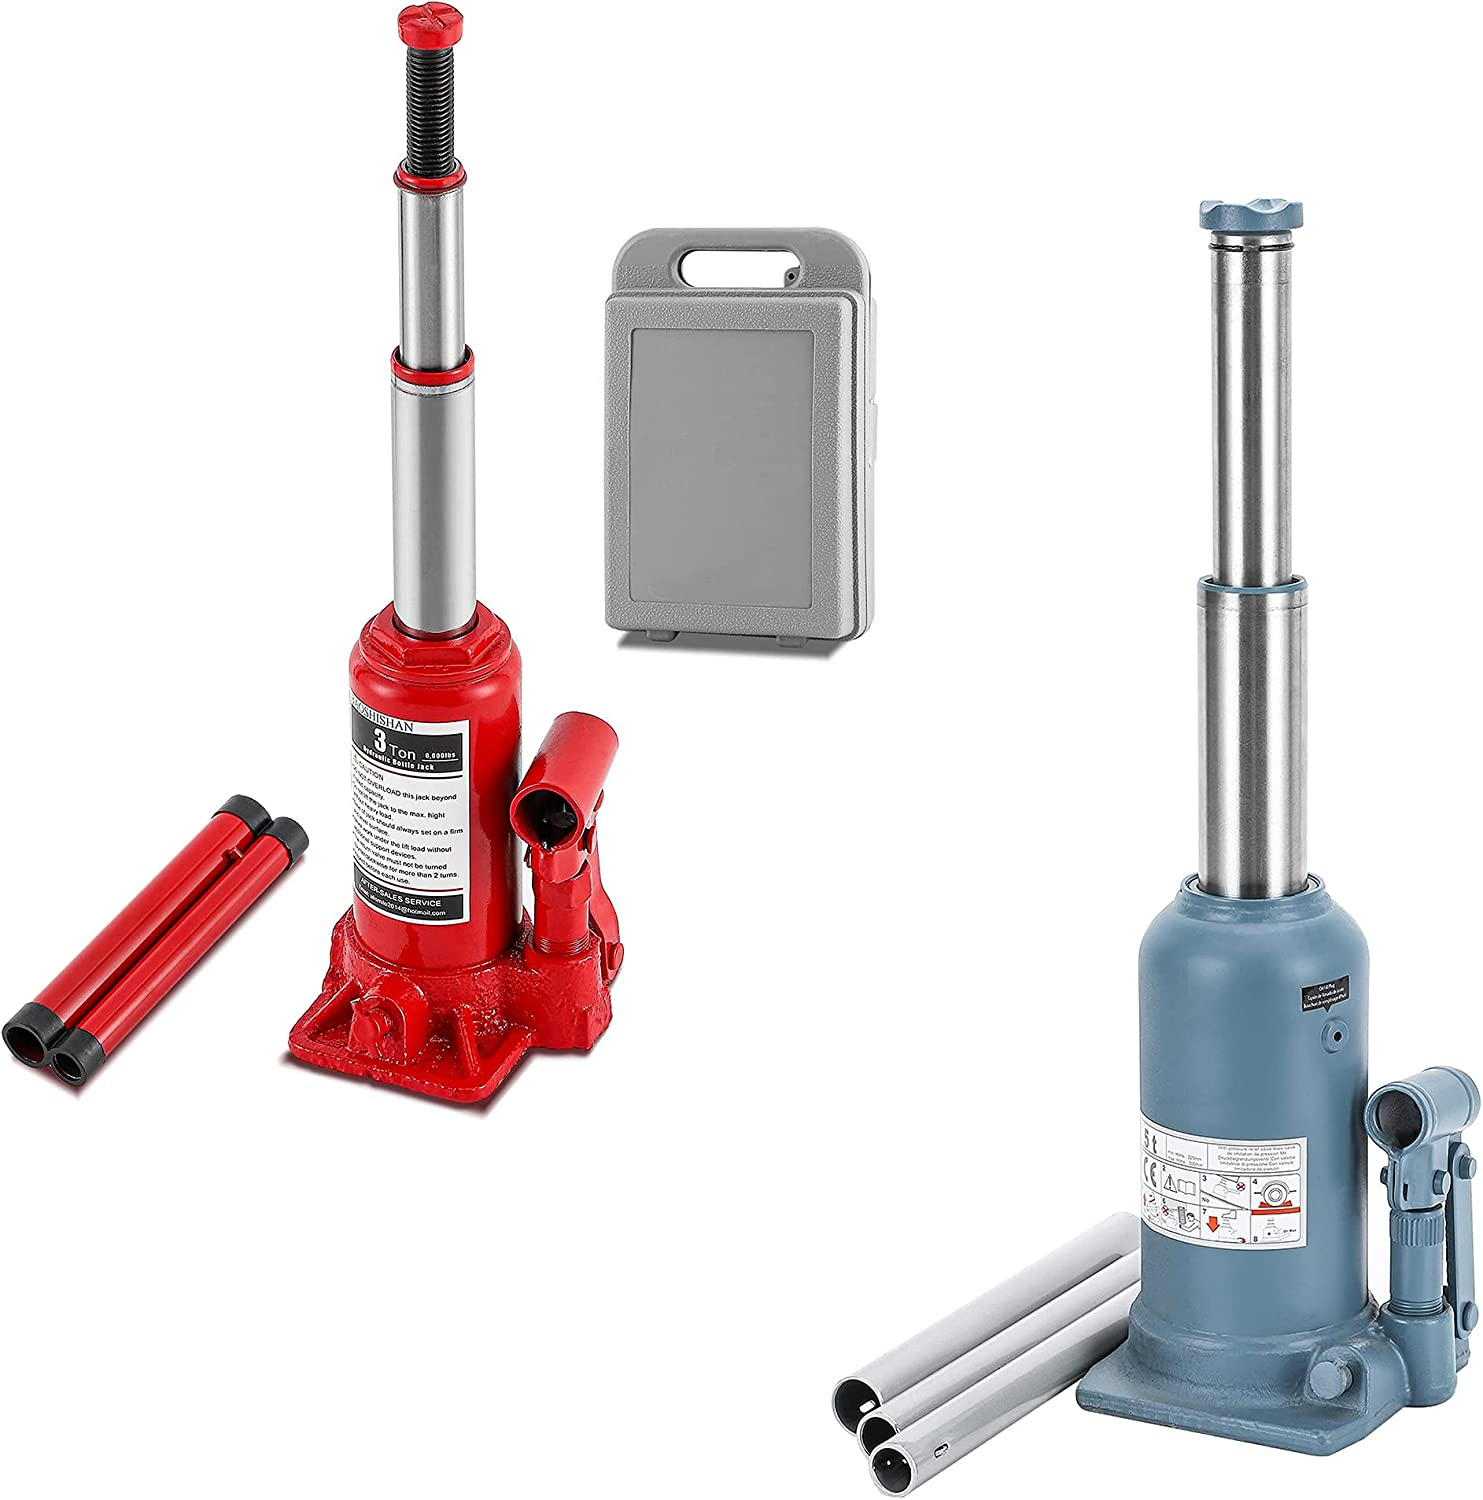 BAOSHISHAN 3 Ton Bottle Jack with Case Lift 5 + Max 63% OFF We OFFer at cheap prices High